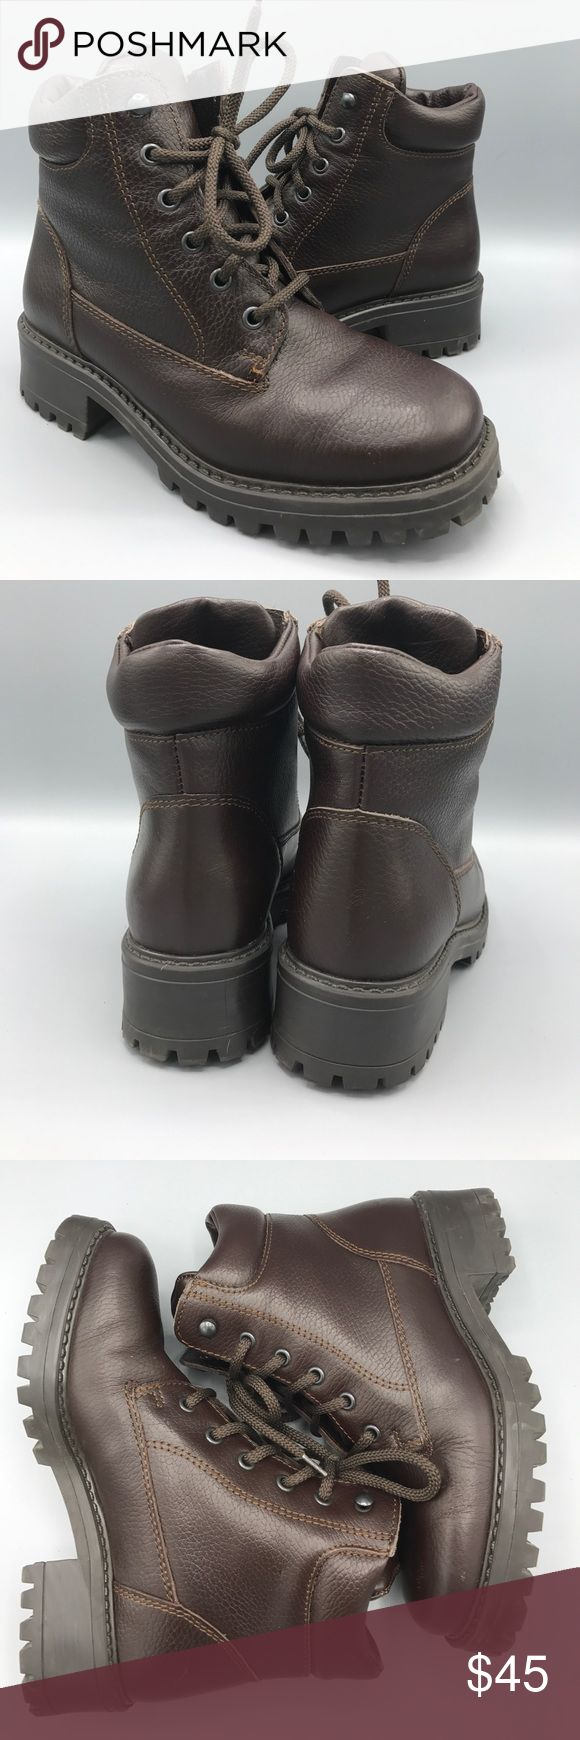 LL Bean Women's Dark Brown Leather Hiking Boot LL Bean Women's Dark Brown Leather Hiking Boot. Sz: 7.5 M OHM 9604 WORN ONCE!  Felt insulated lining. Couple small scuffs on toes. L.L. Bean Shoes Ankle Boots & Booties